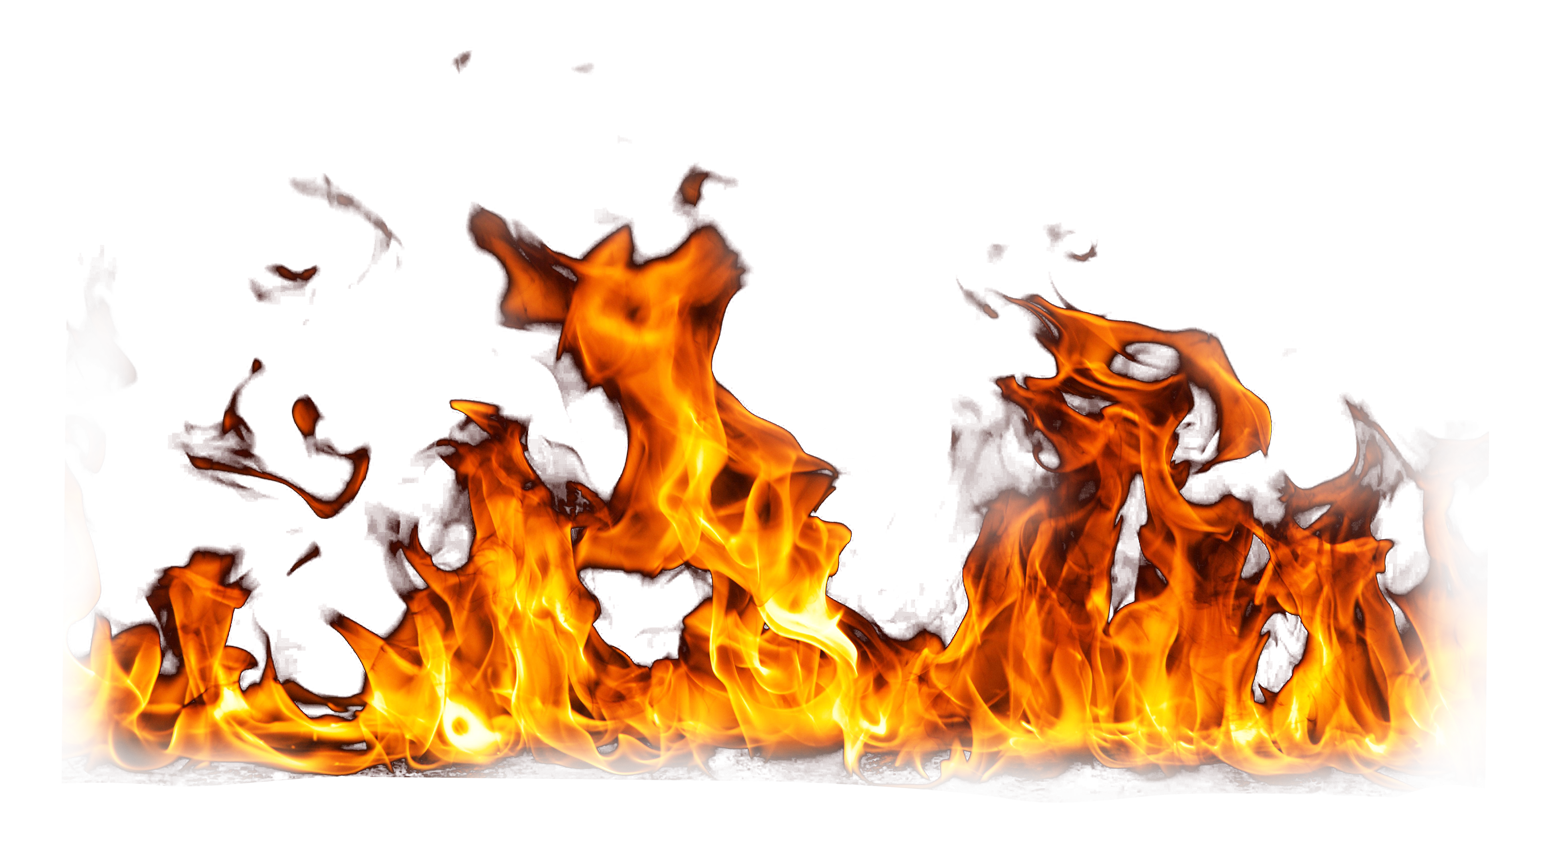 Fire clipart illustration, Fire illustration Transparent.